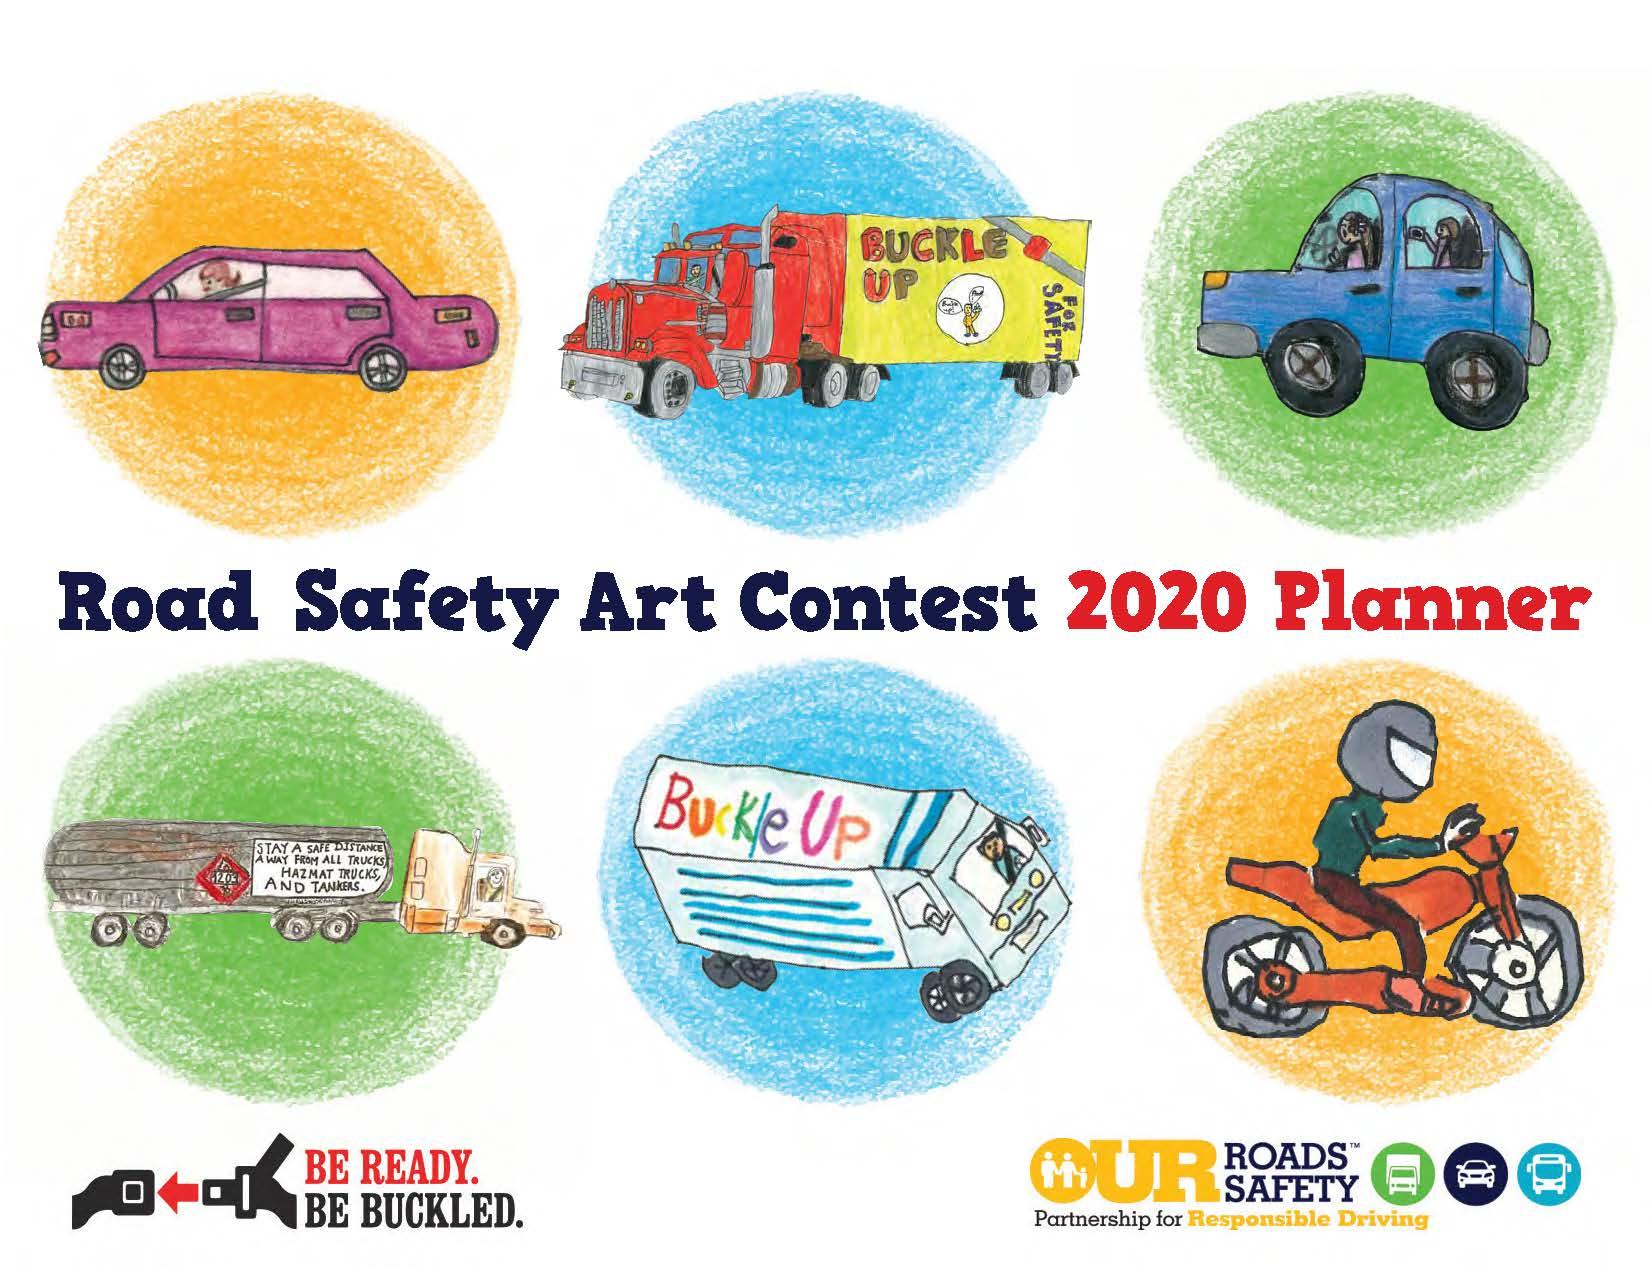 Road Safety Art Contest Planner Cover